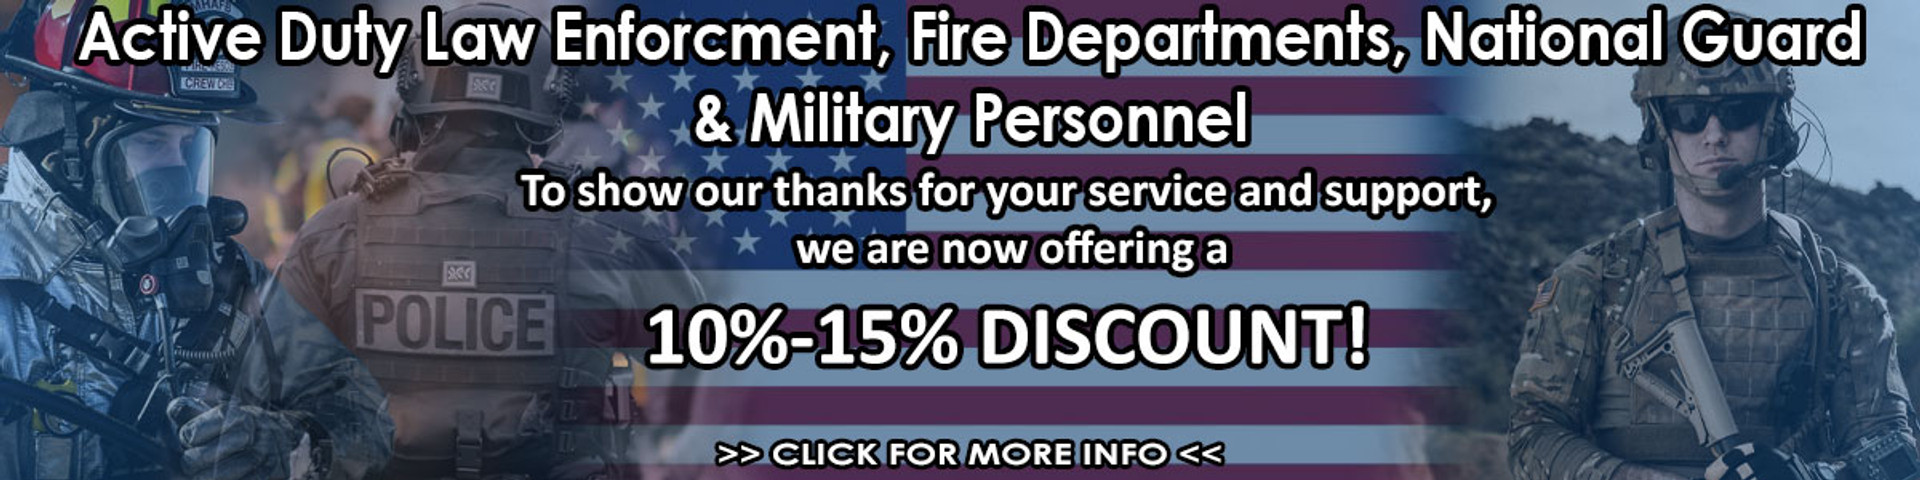 Discount for Active Duty Law, Fire & Rescue, National Guard and Military Personnel